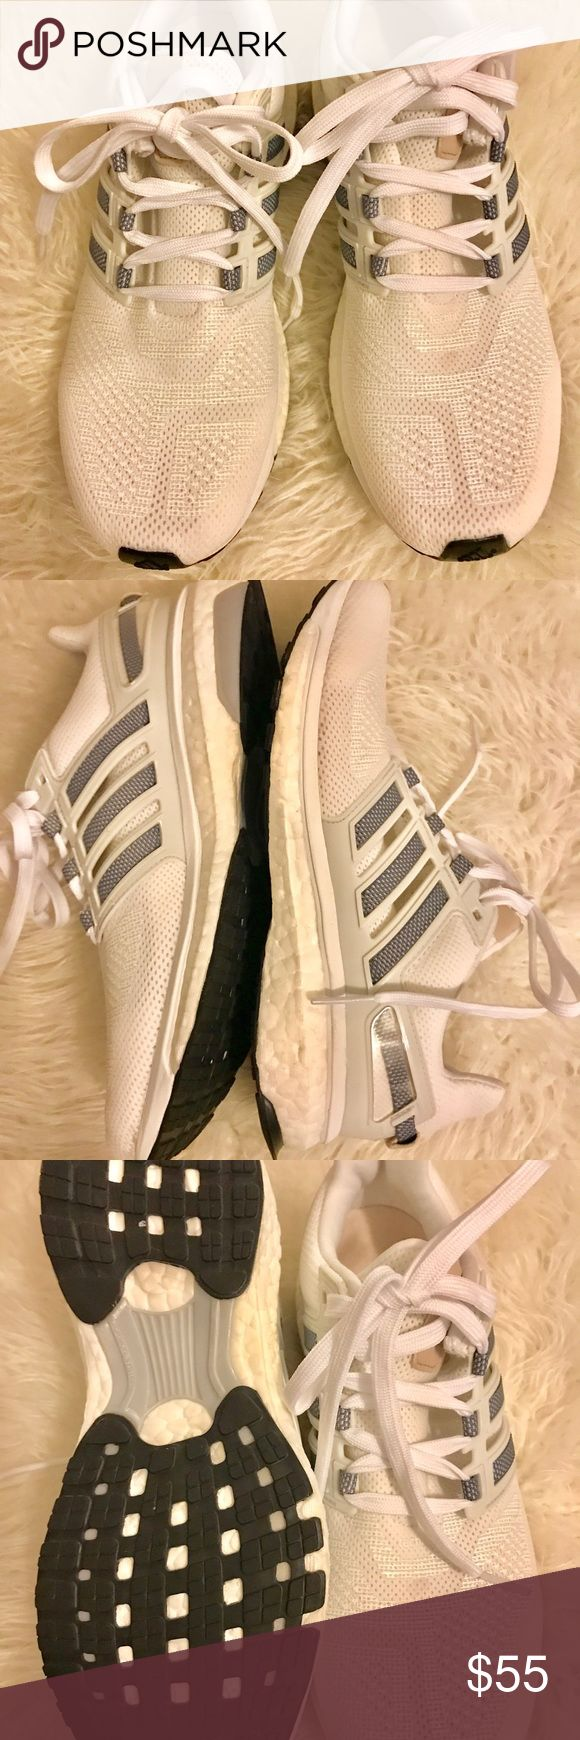 Adidas Energy Boost Running Shoes Pictures don't do it justice, super clean like new Adidas Energy Boost Running shoes size 7.5 fits more like a size 8. Mint condition adidas Shoes Sneakers